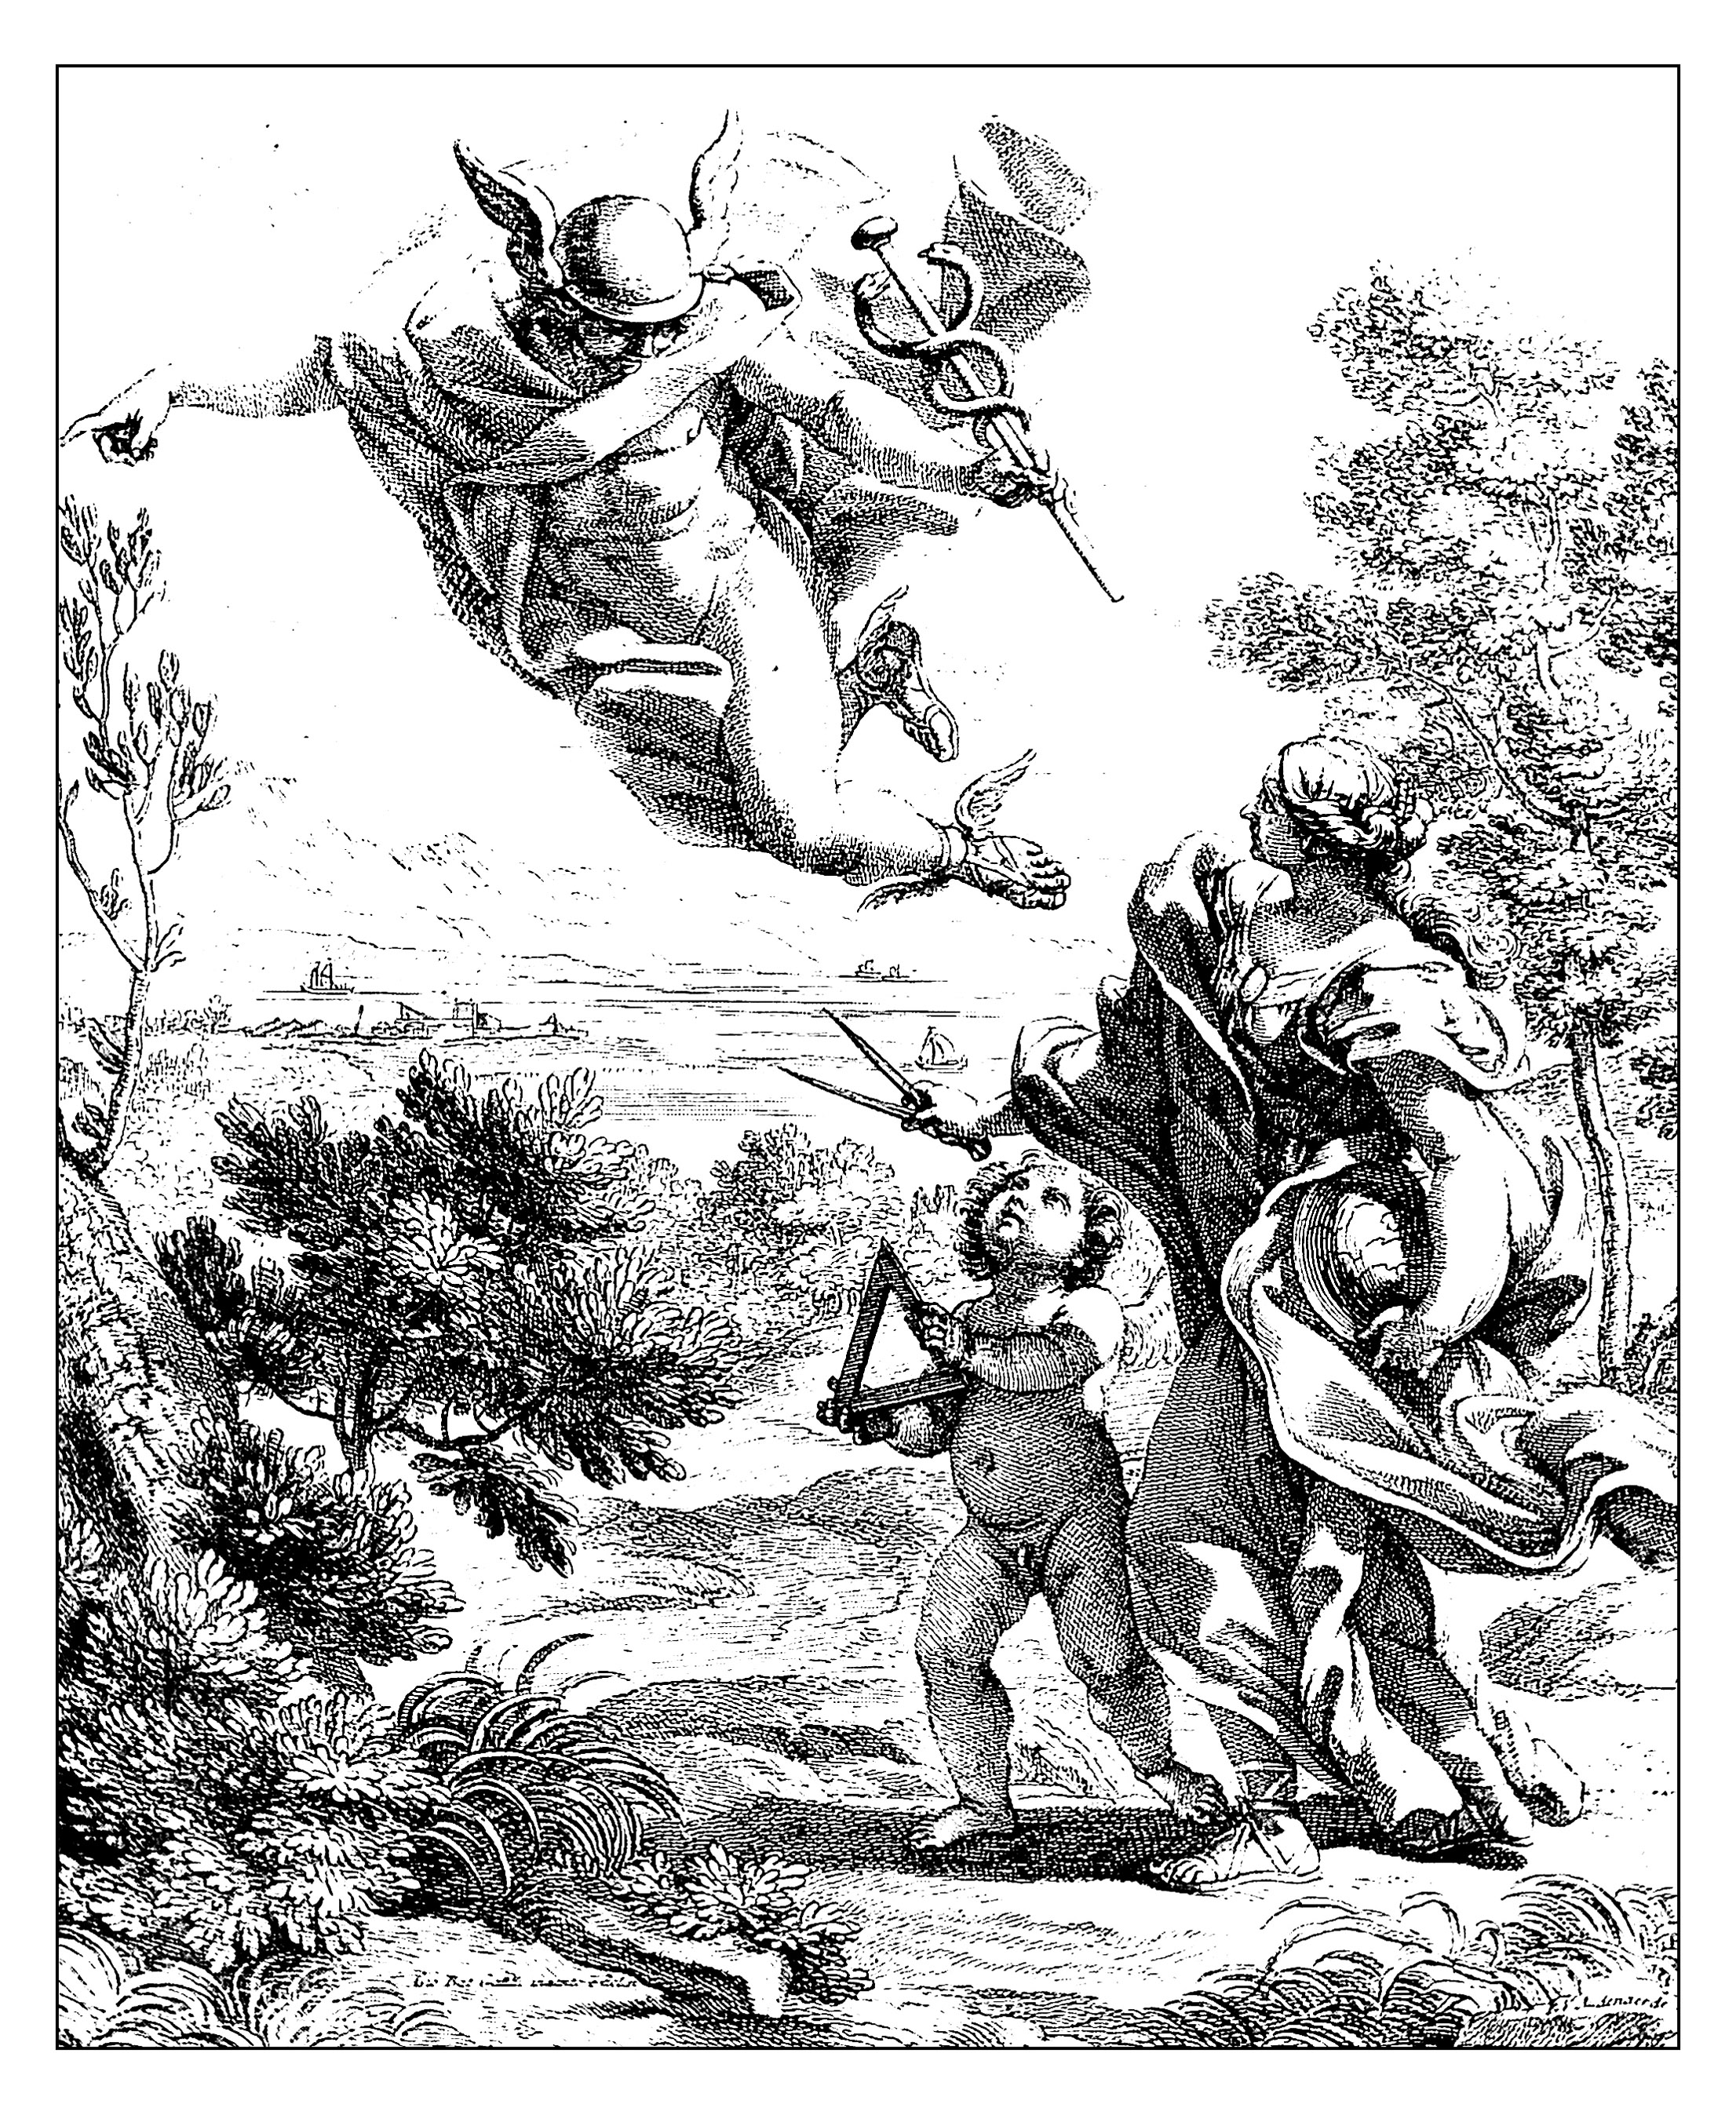 Allegory of geography, engraving by Giovan Battista